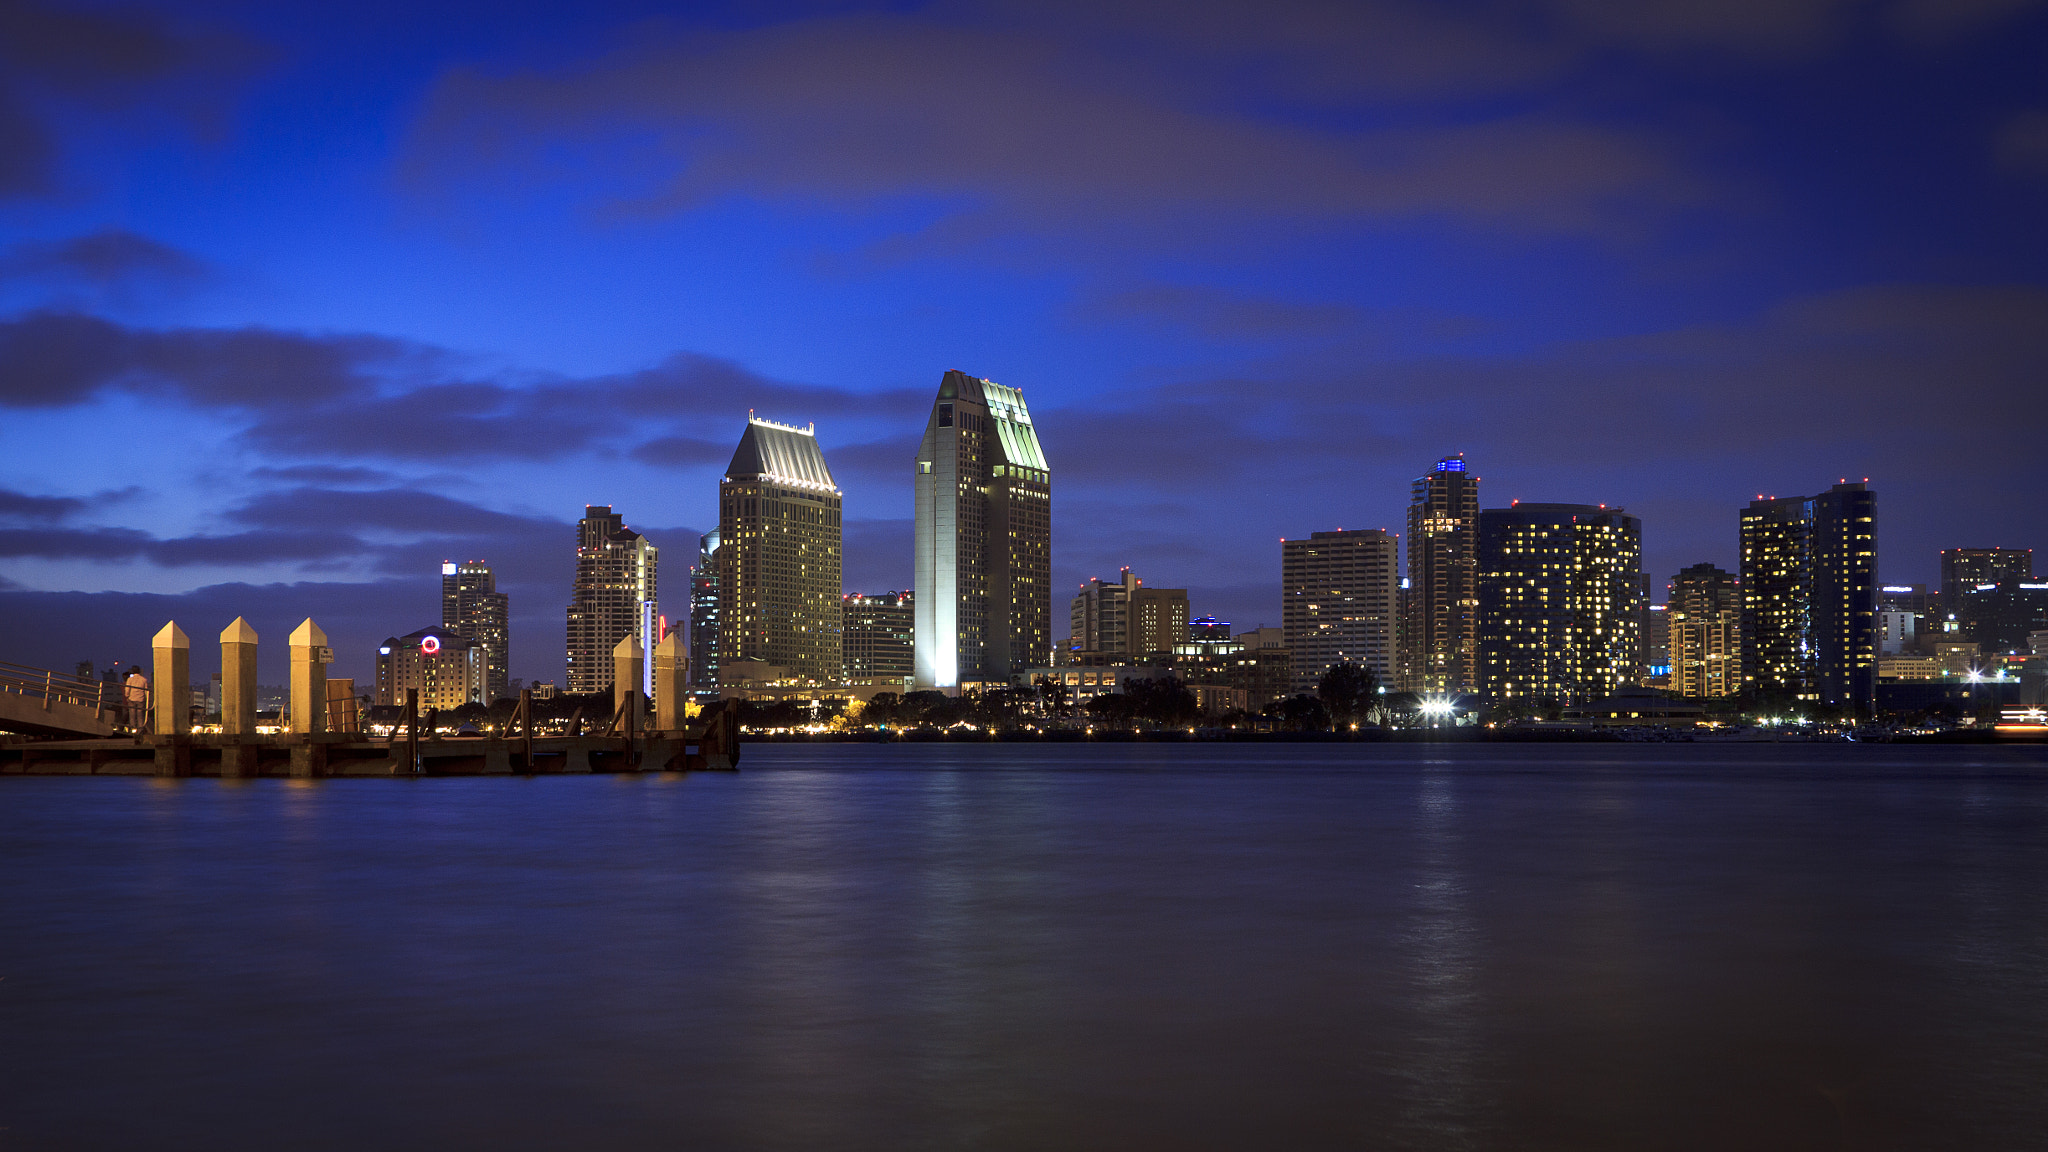 Photograph San Diego Skyline from Coronado Island by Marcos Salvi on 500px